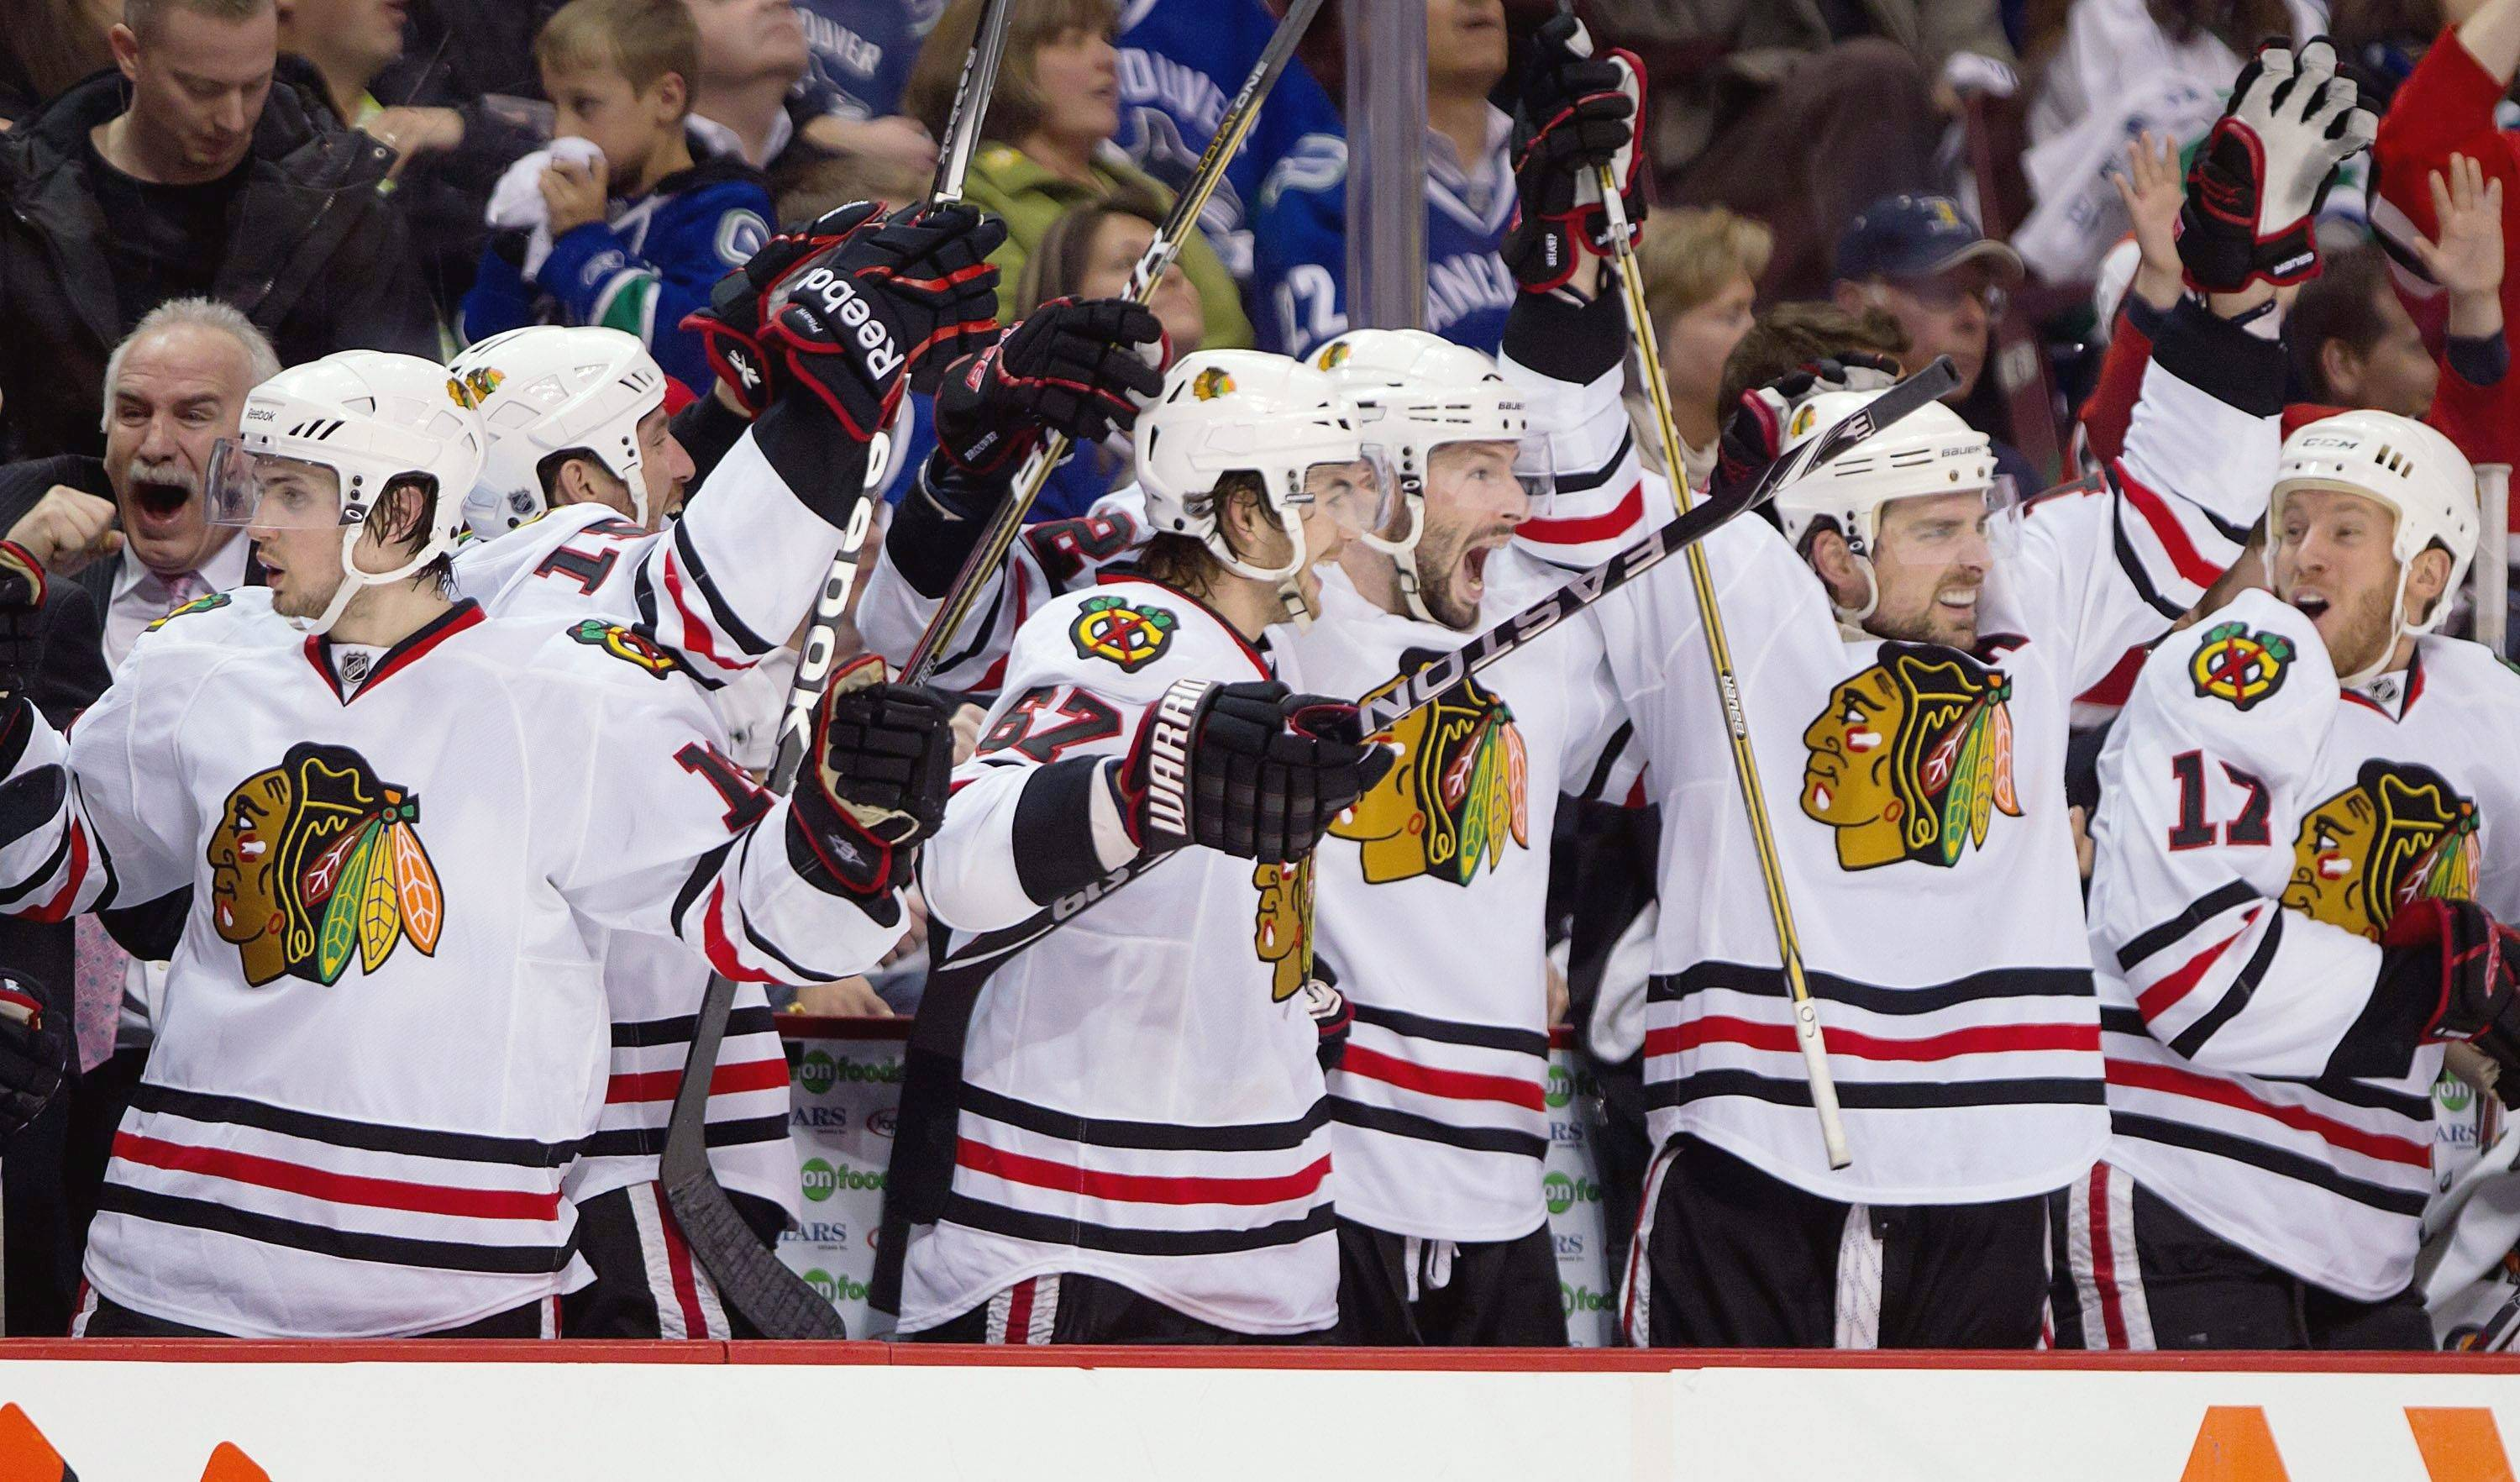 The Chicago Blackhawks bench celebrates after Jonathan Toews scored the game-tying goal against the Vancouver Canucks during the third period of game 7 of an NHL Western Conference quarterfinal Stanley Cup playoff hockey series Tuesday.